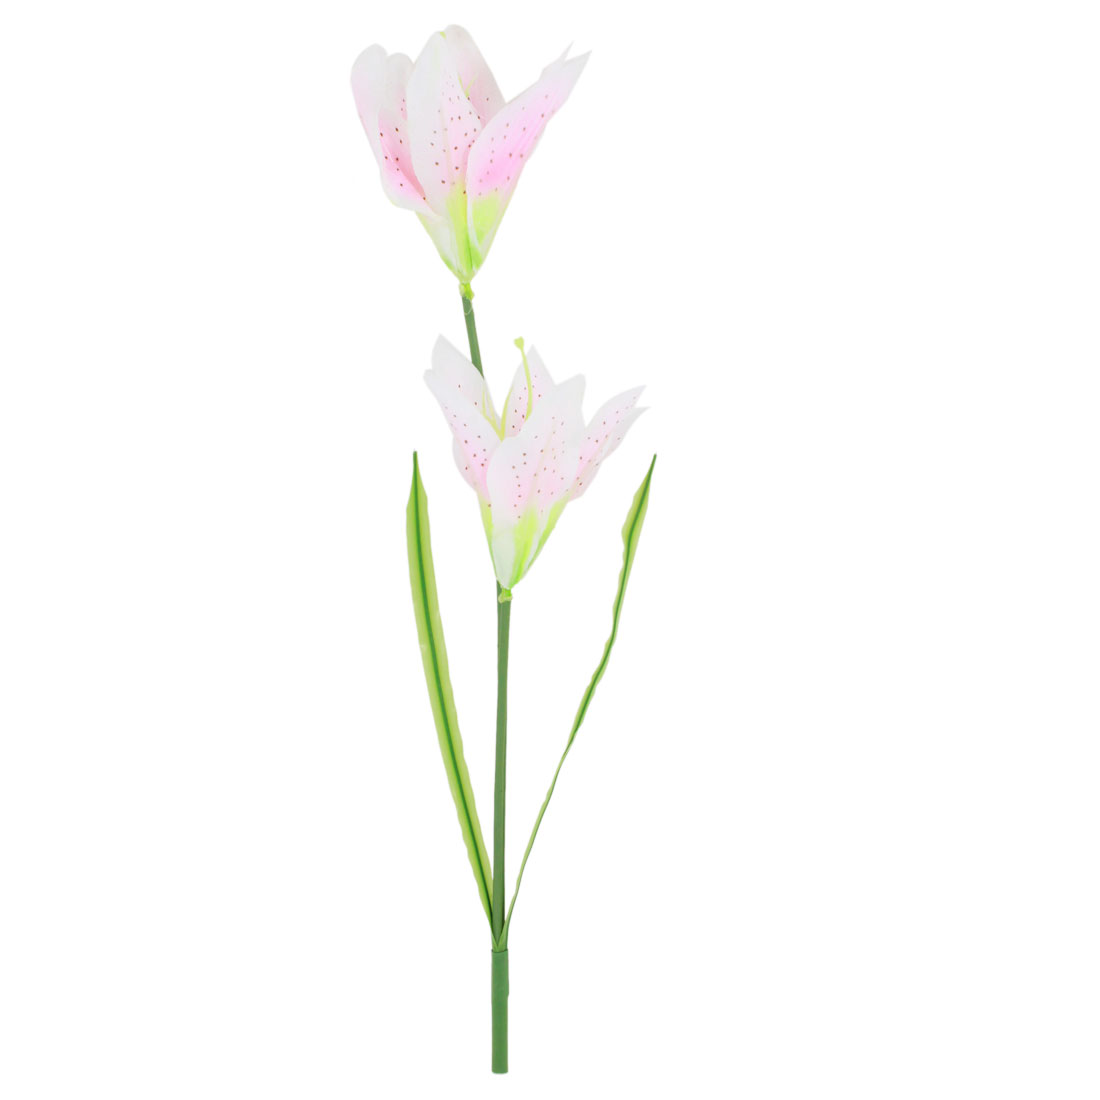 Home Living Room Ornament Simulation Plastic Lily Flowers Pale Pink 39cm